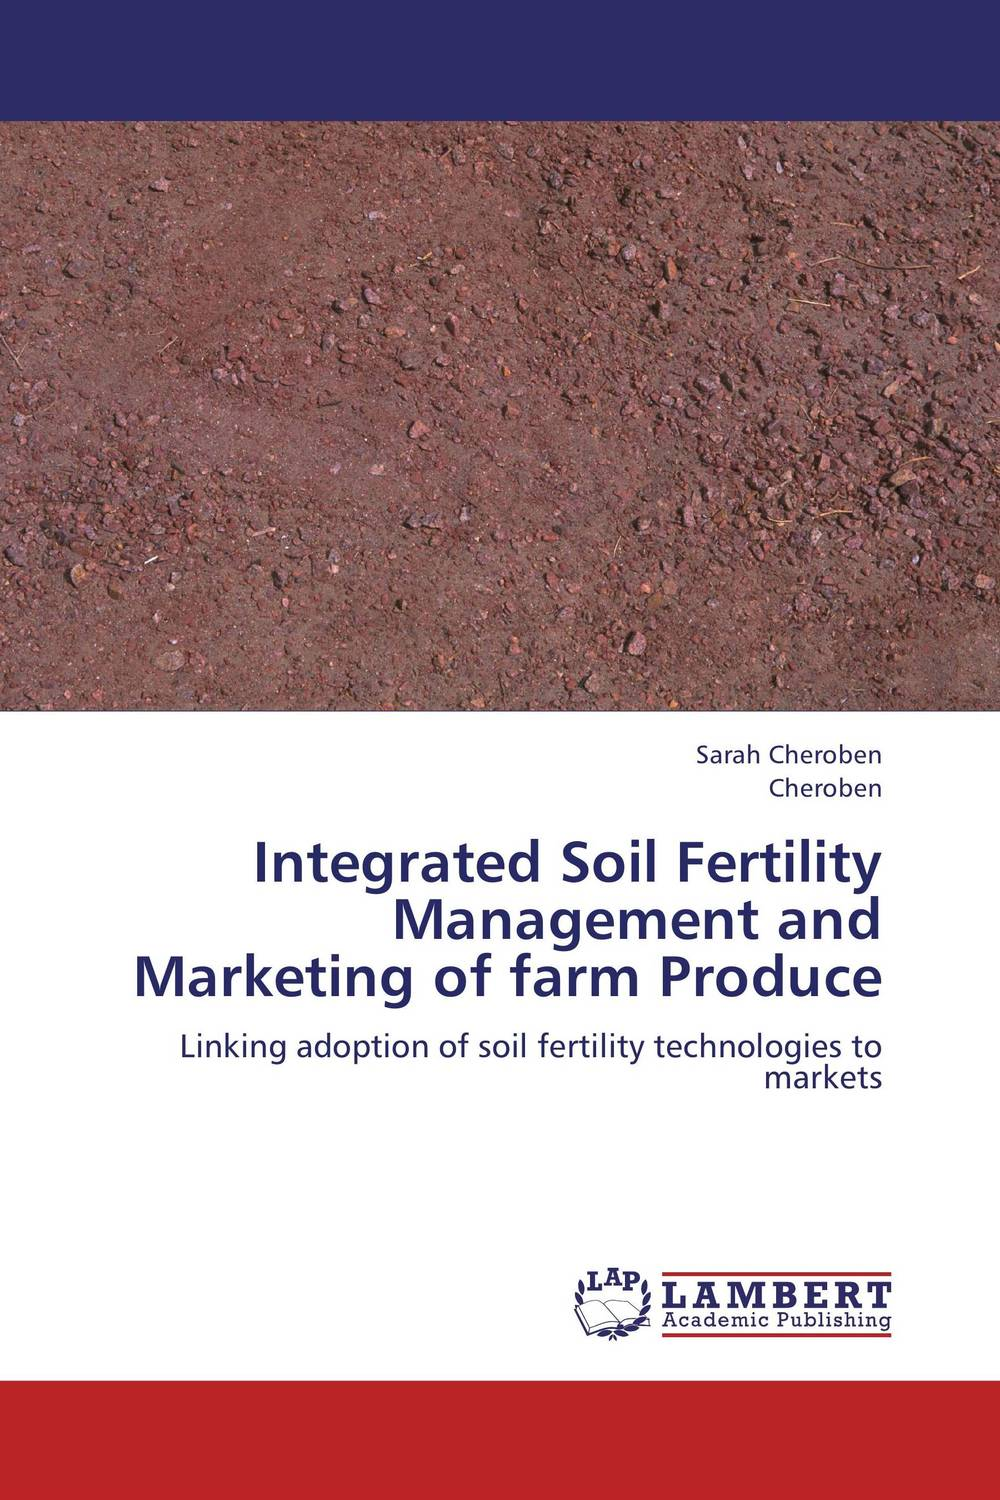 Integrated Soil Fertility Management and Marketing of farm Produce sarah cheroben and cheroben integrated soil fertility management and marketing of farm produce